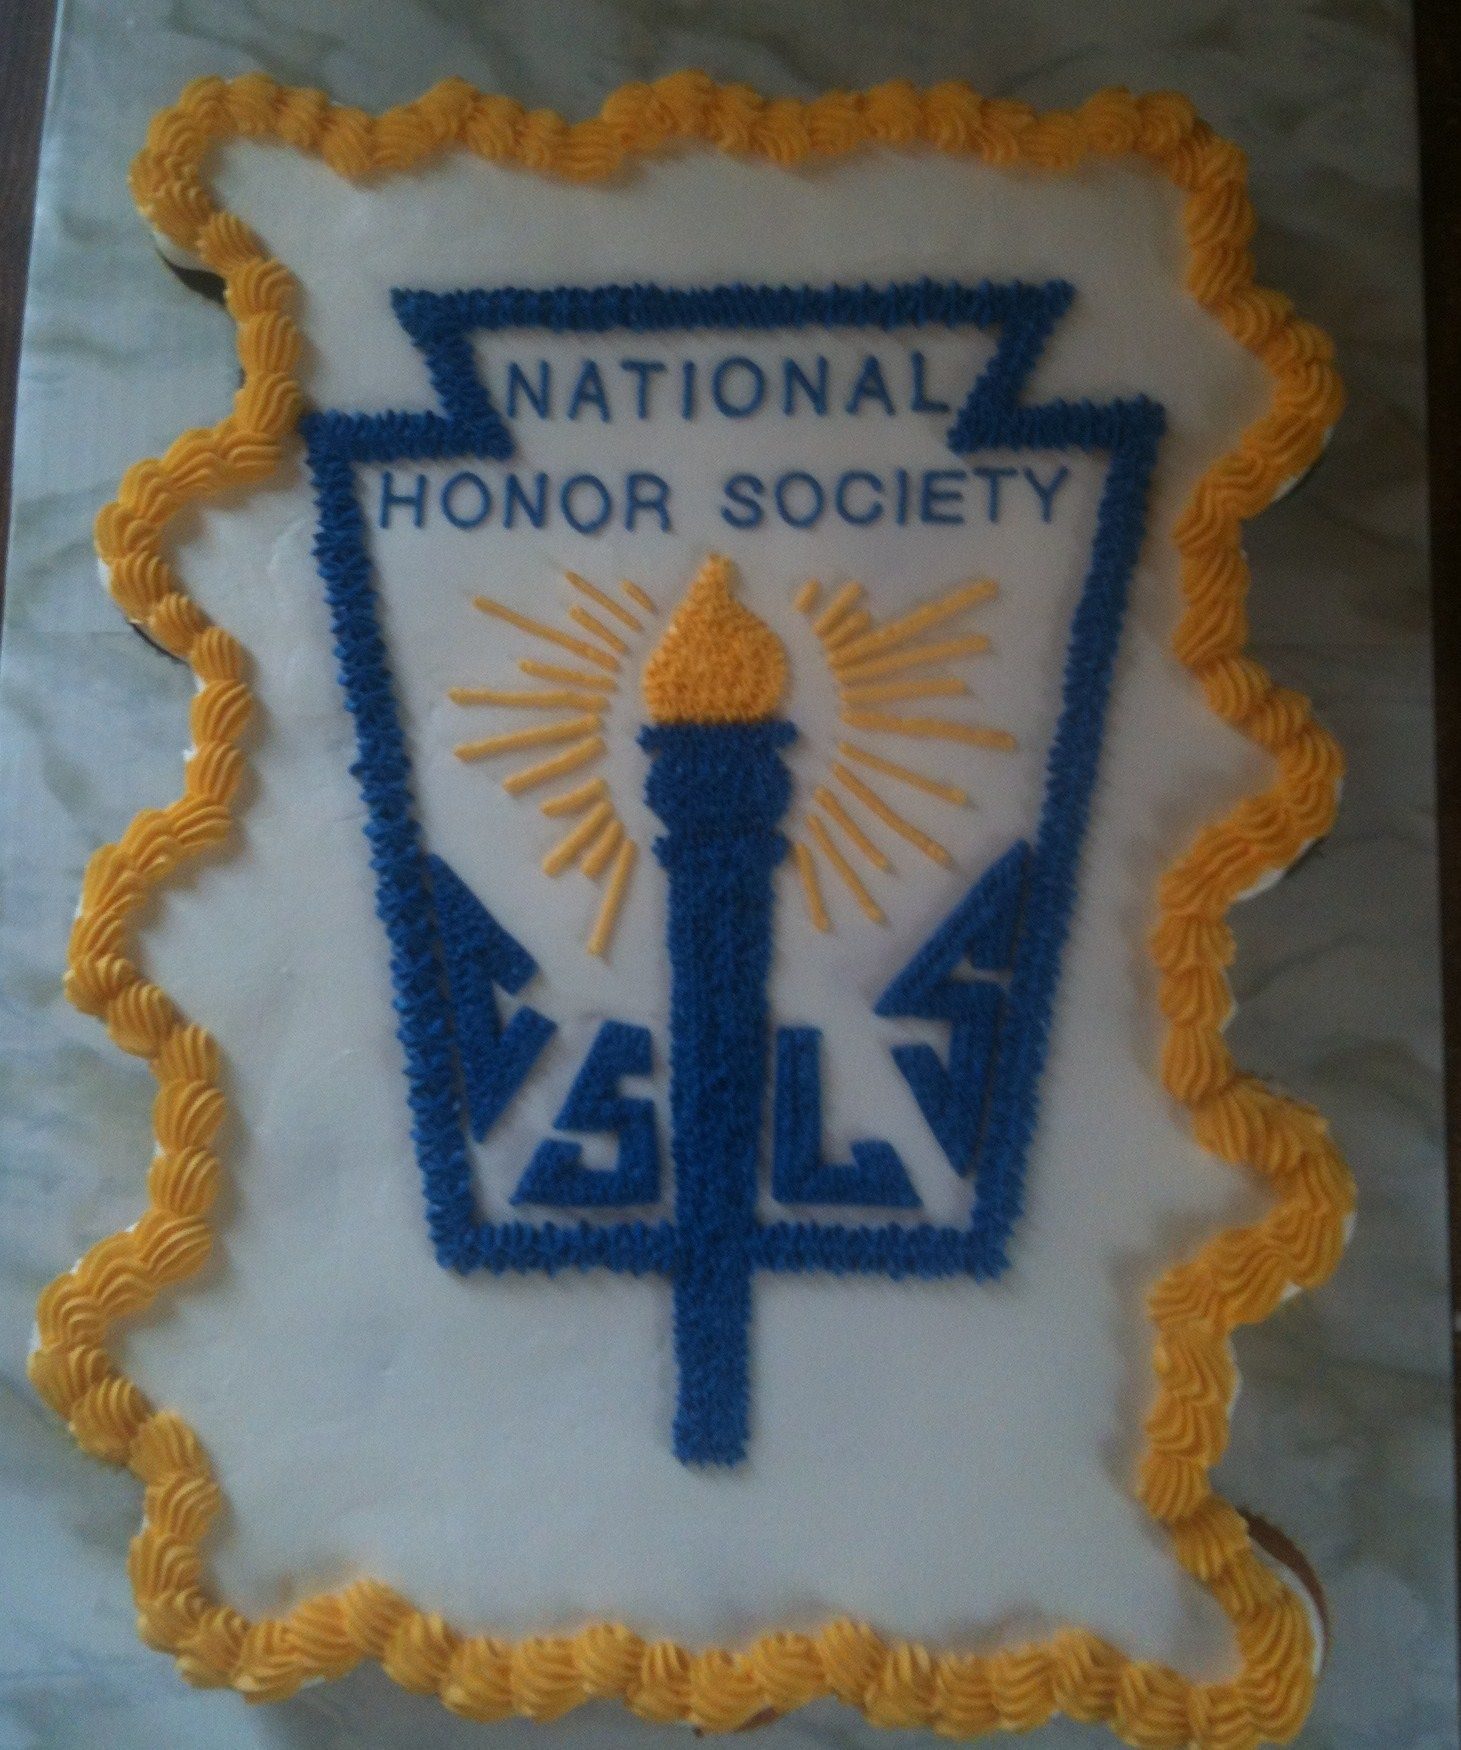 17 best images about national honor society dating 17 best images about national honor society dating games national honor society and teaching